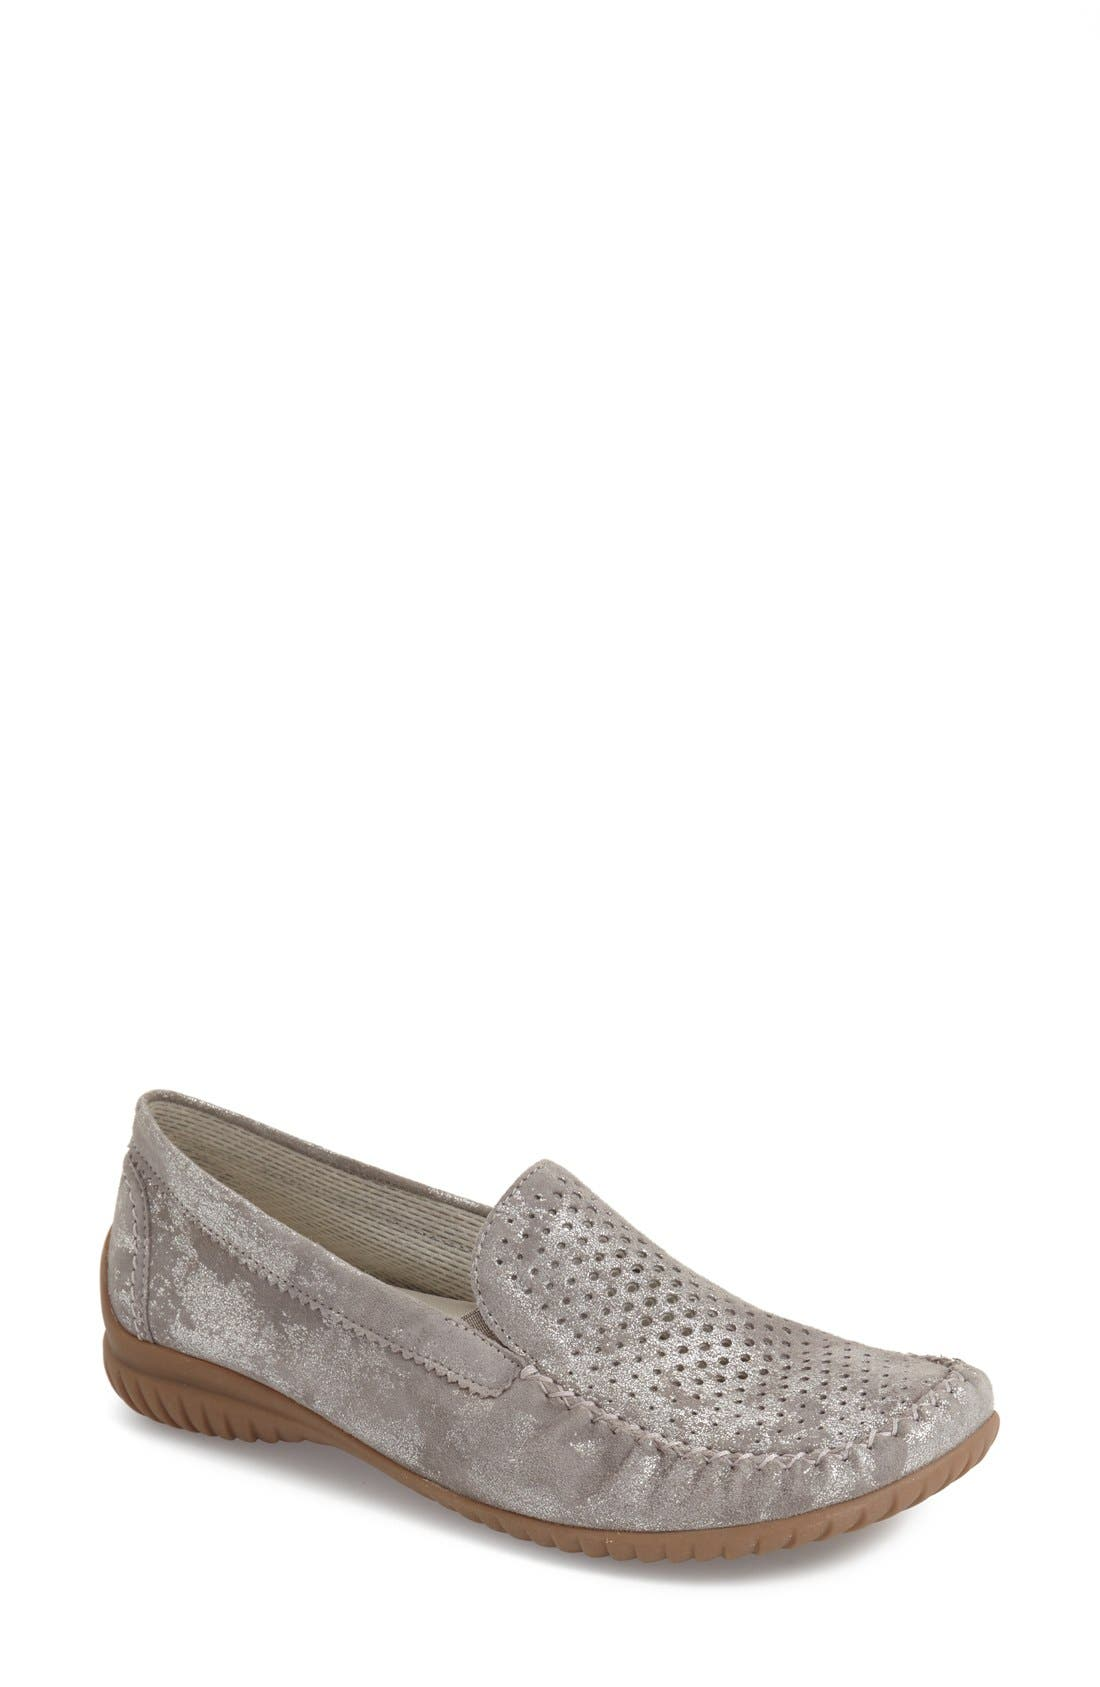 Perforated Loafer,                         Main,                         color, GREY CARUSO LEATHER